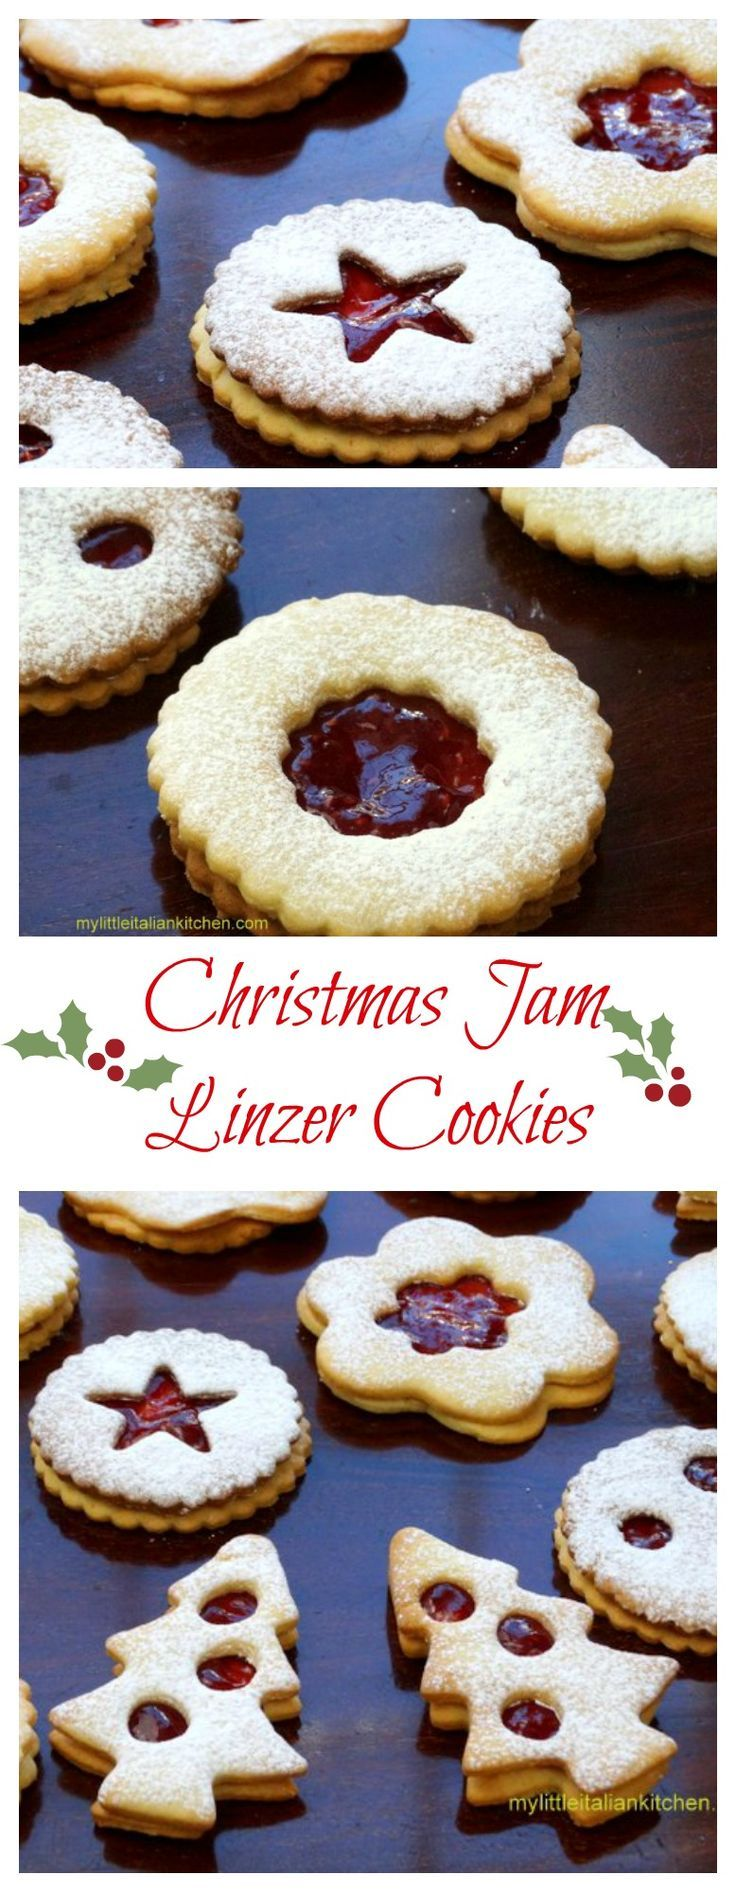 Christmas Jams Christmas jam Linzer cookies. They look pretty and ever so moreish! Images HD Ideas  Christmas jam Linzer cookies. They look pretty and ever so moreish! Christmas Jams Christmas jam Linzer cookies. They look pretty and ever so moreish! Images HD Ideas Christmas jam Linzer cookies....